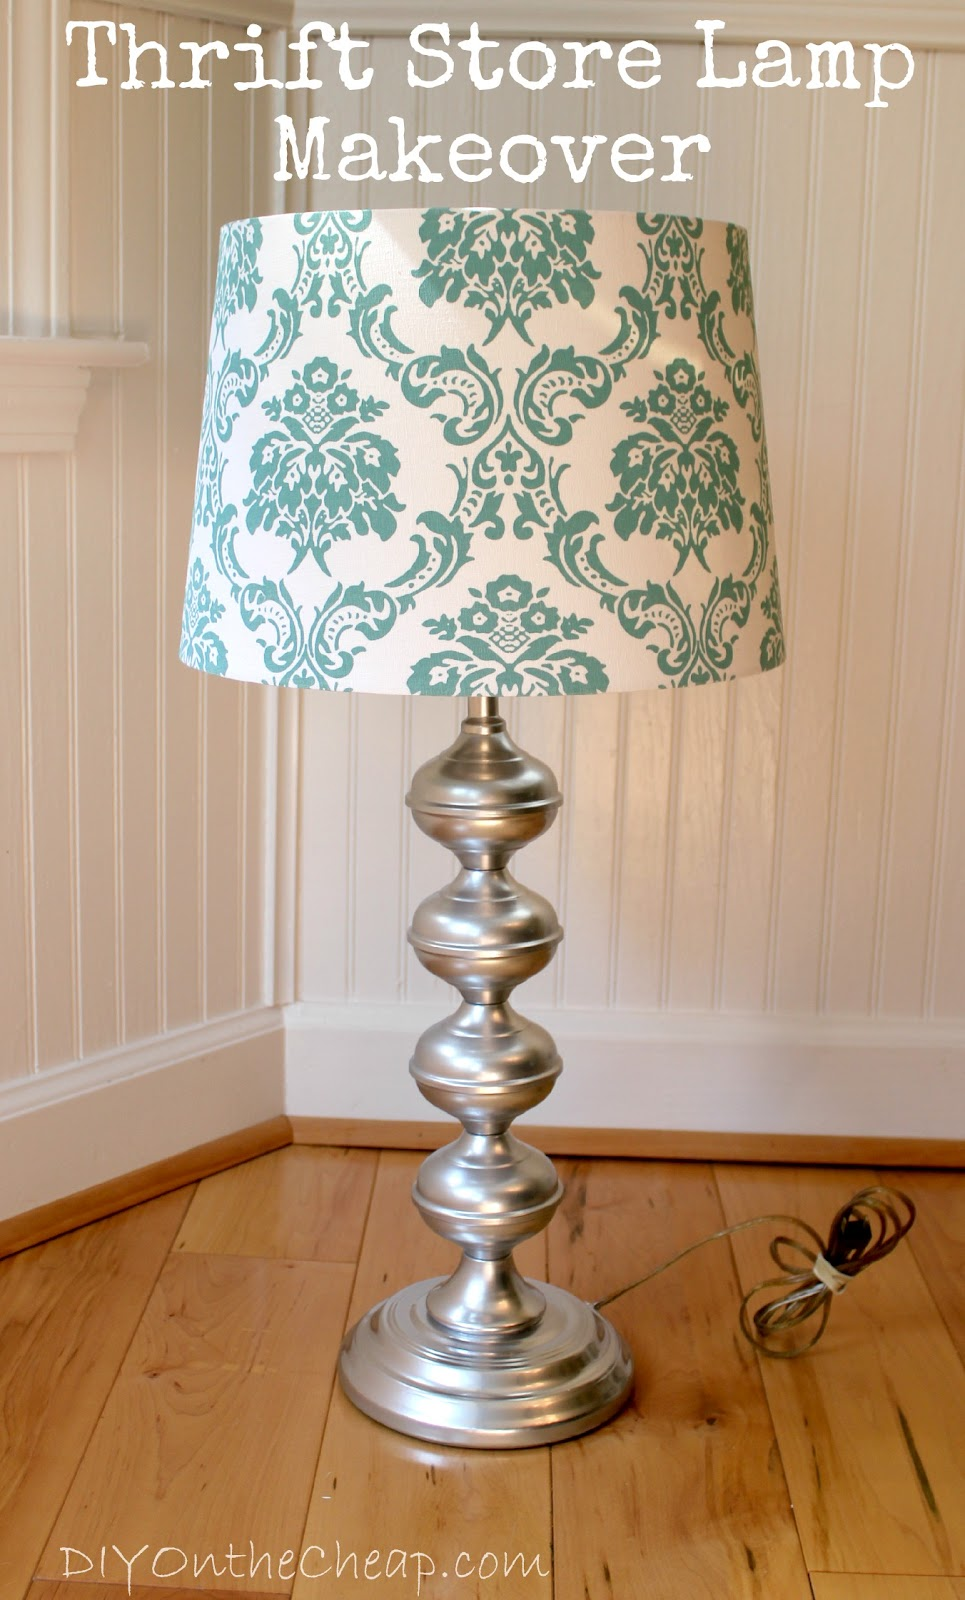 thrift store lamp makeover diy on the cheap. Black Bedroom Furniture Sets. Home Design Ideas